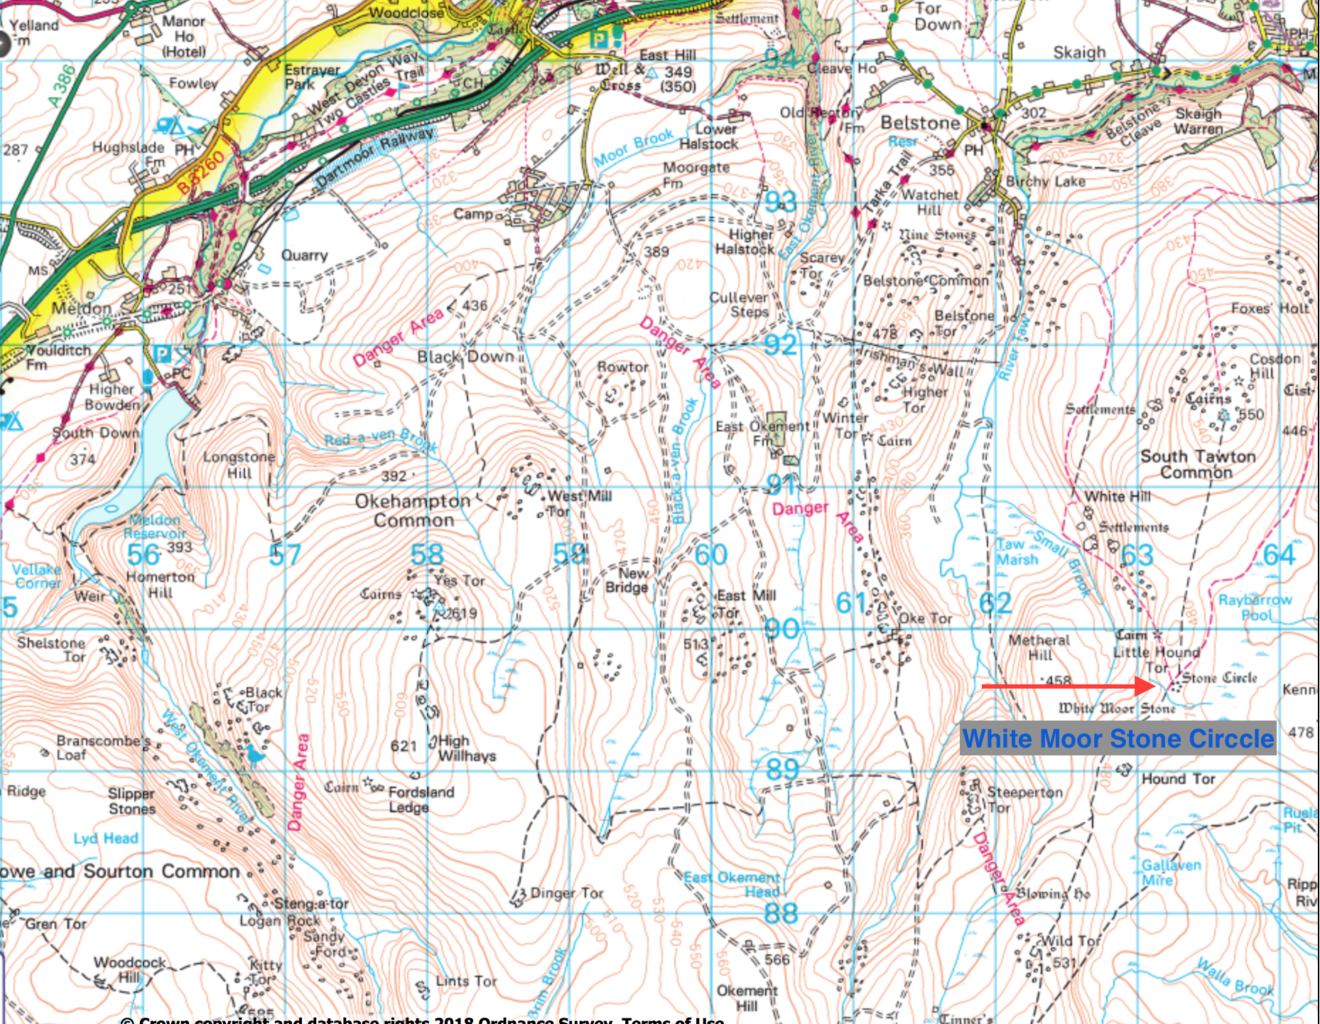 A map showing the location of the White Moor Stone Circle on northern Dartmoor National Park